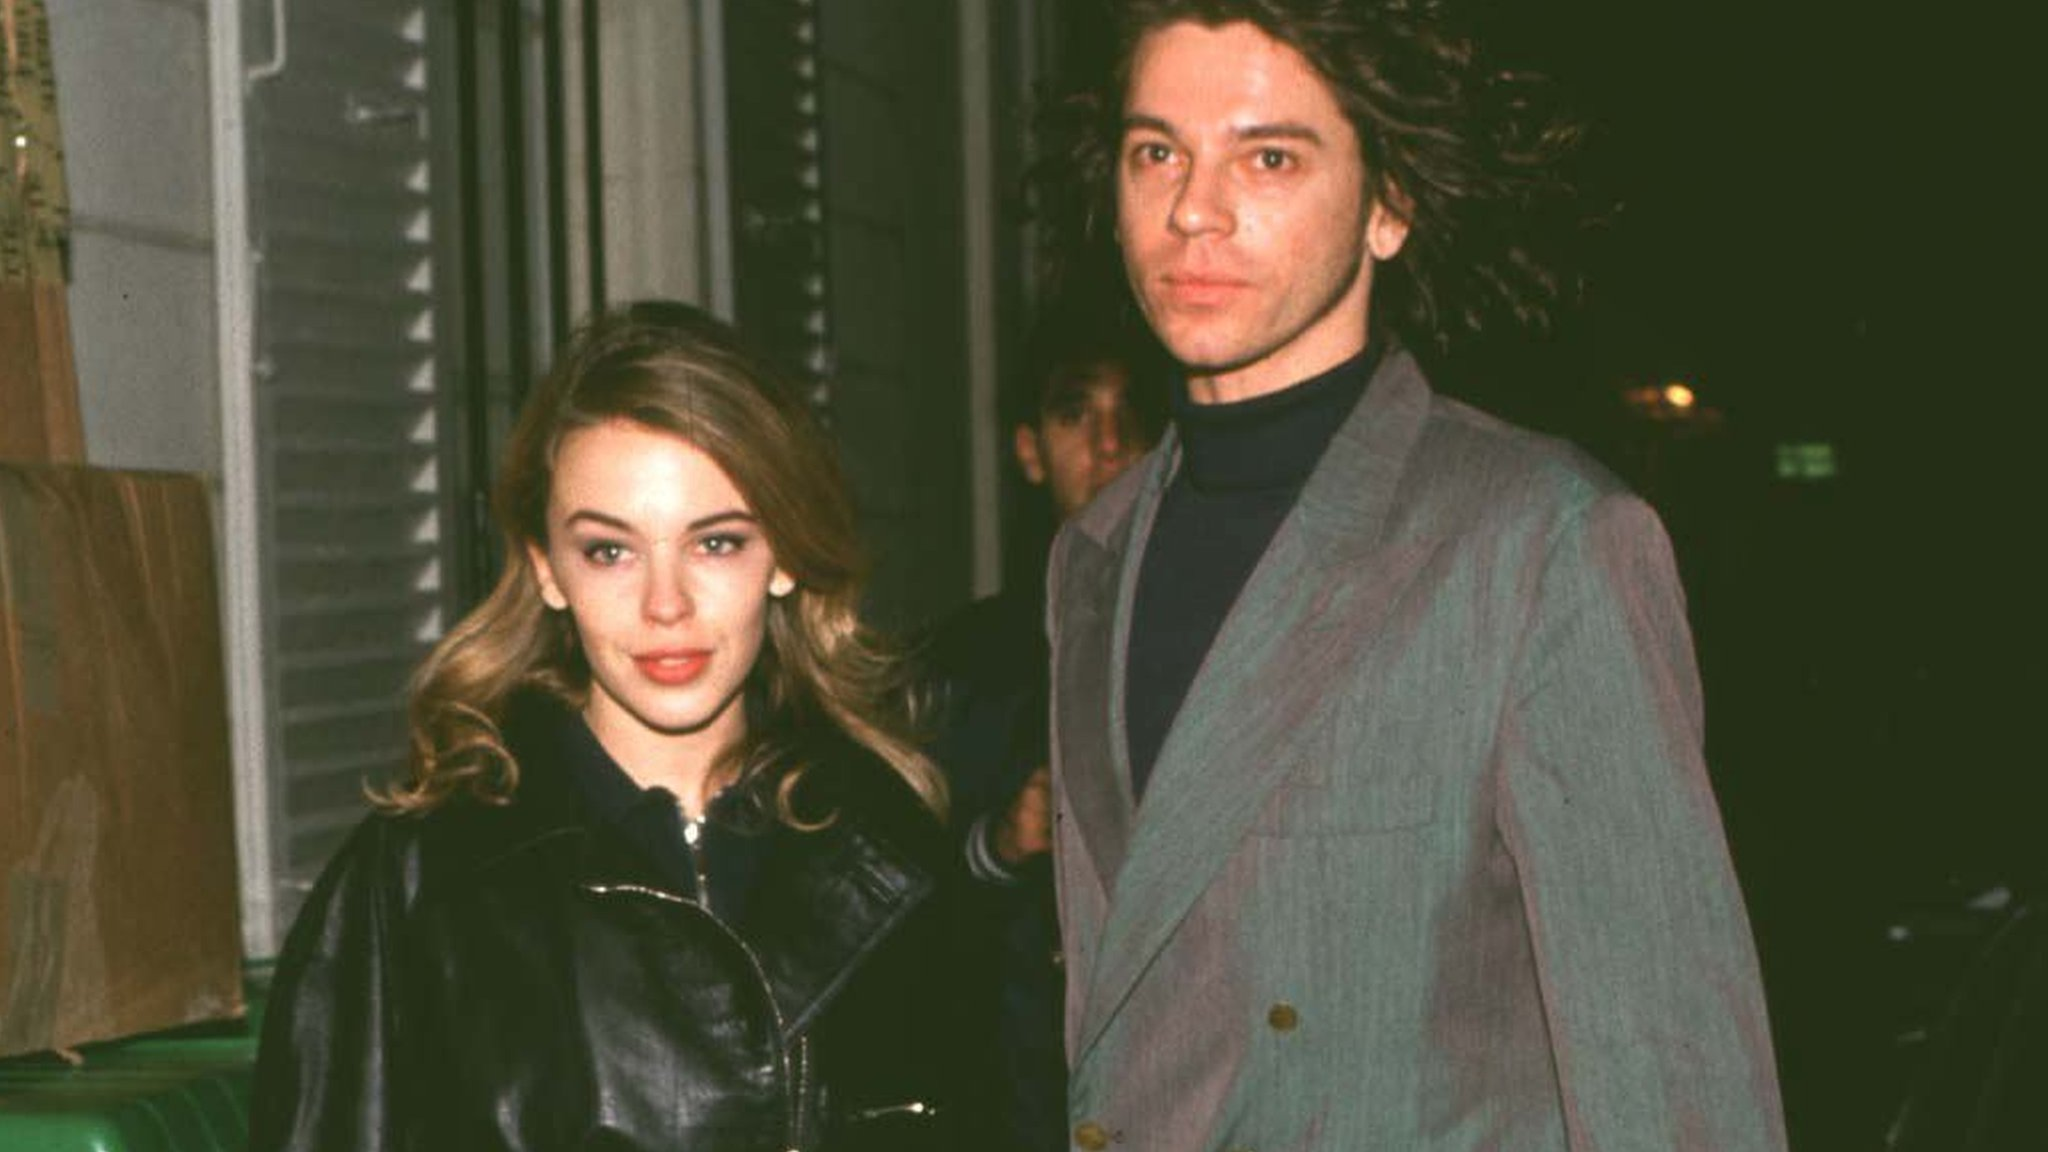 BBC News - Michael Hutchence doc to include Kylie Minogue home videos